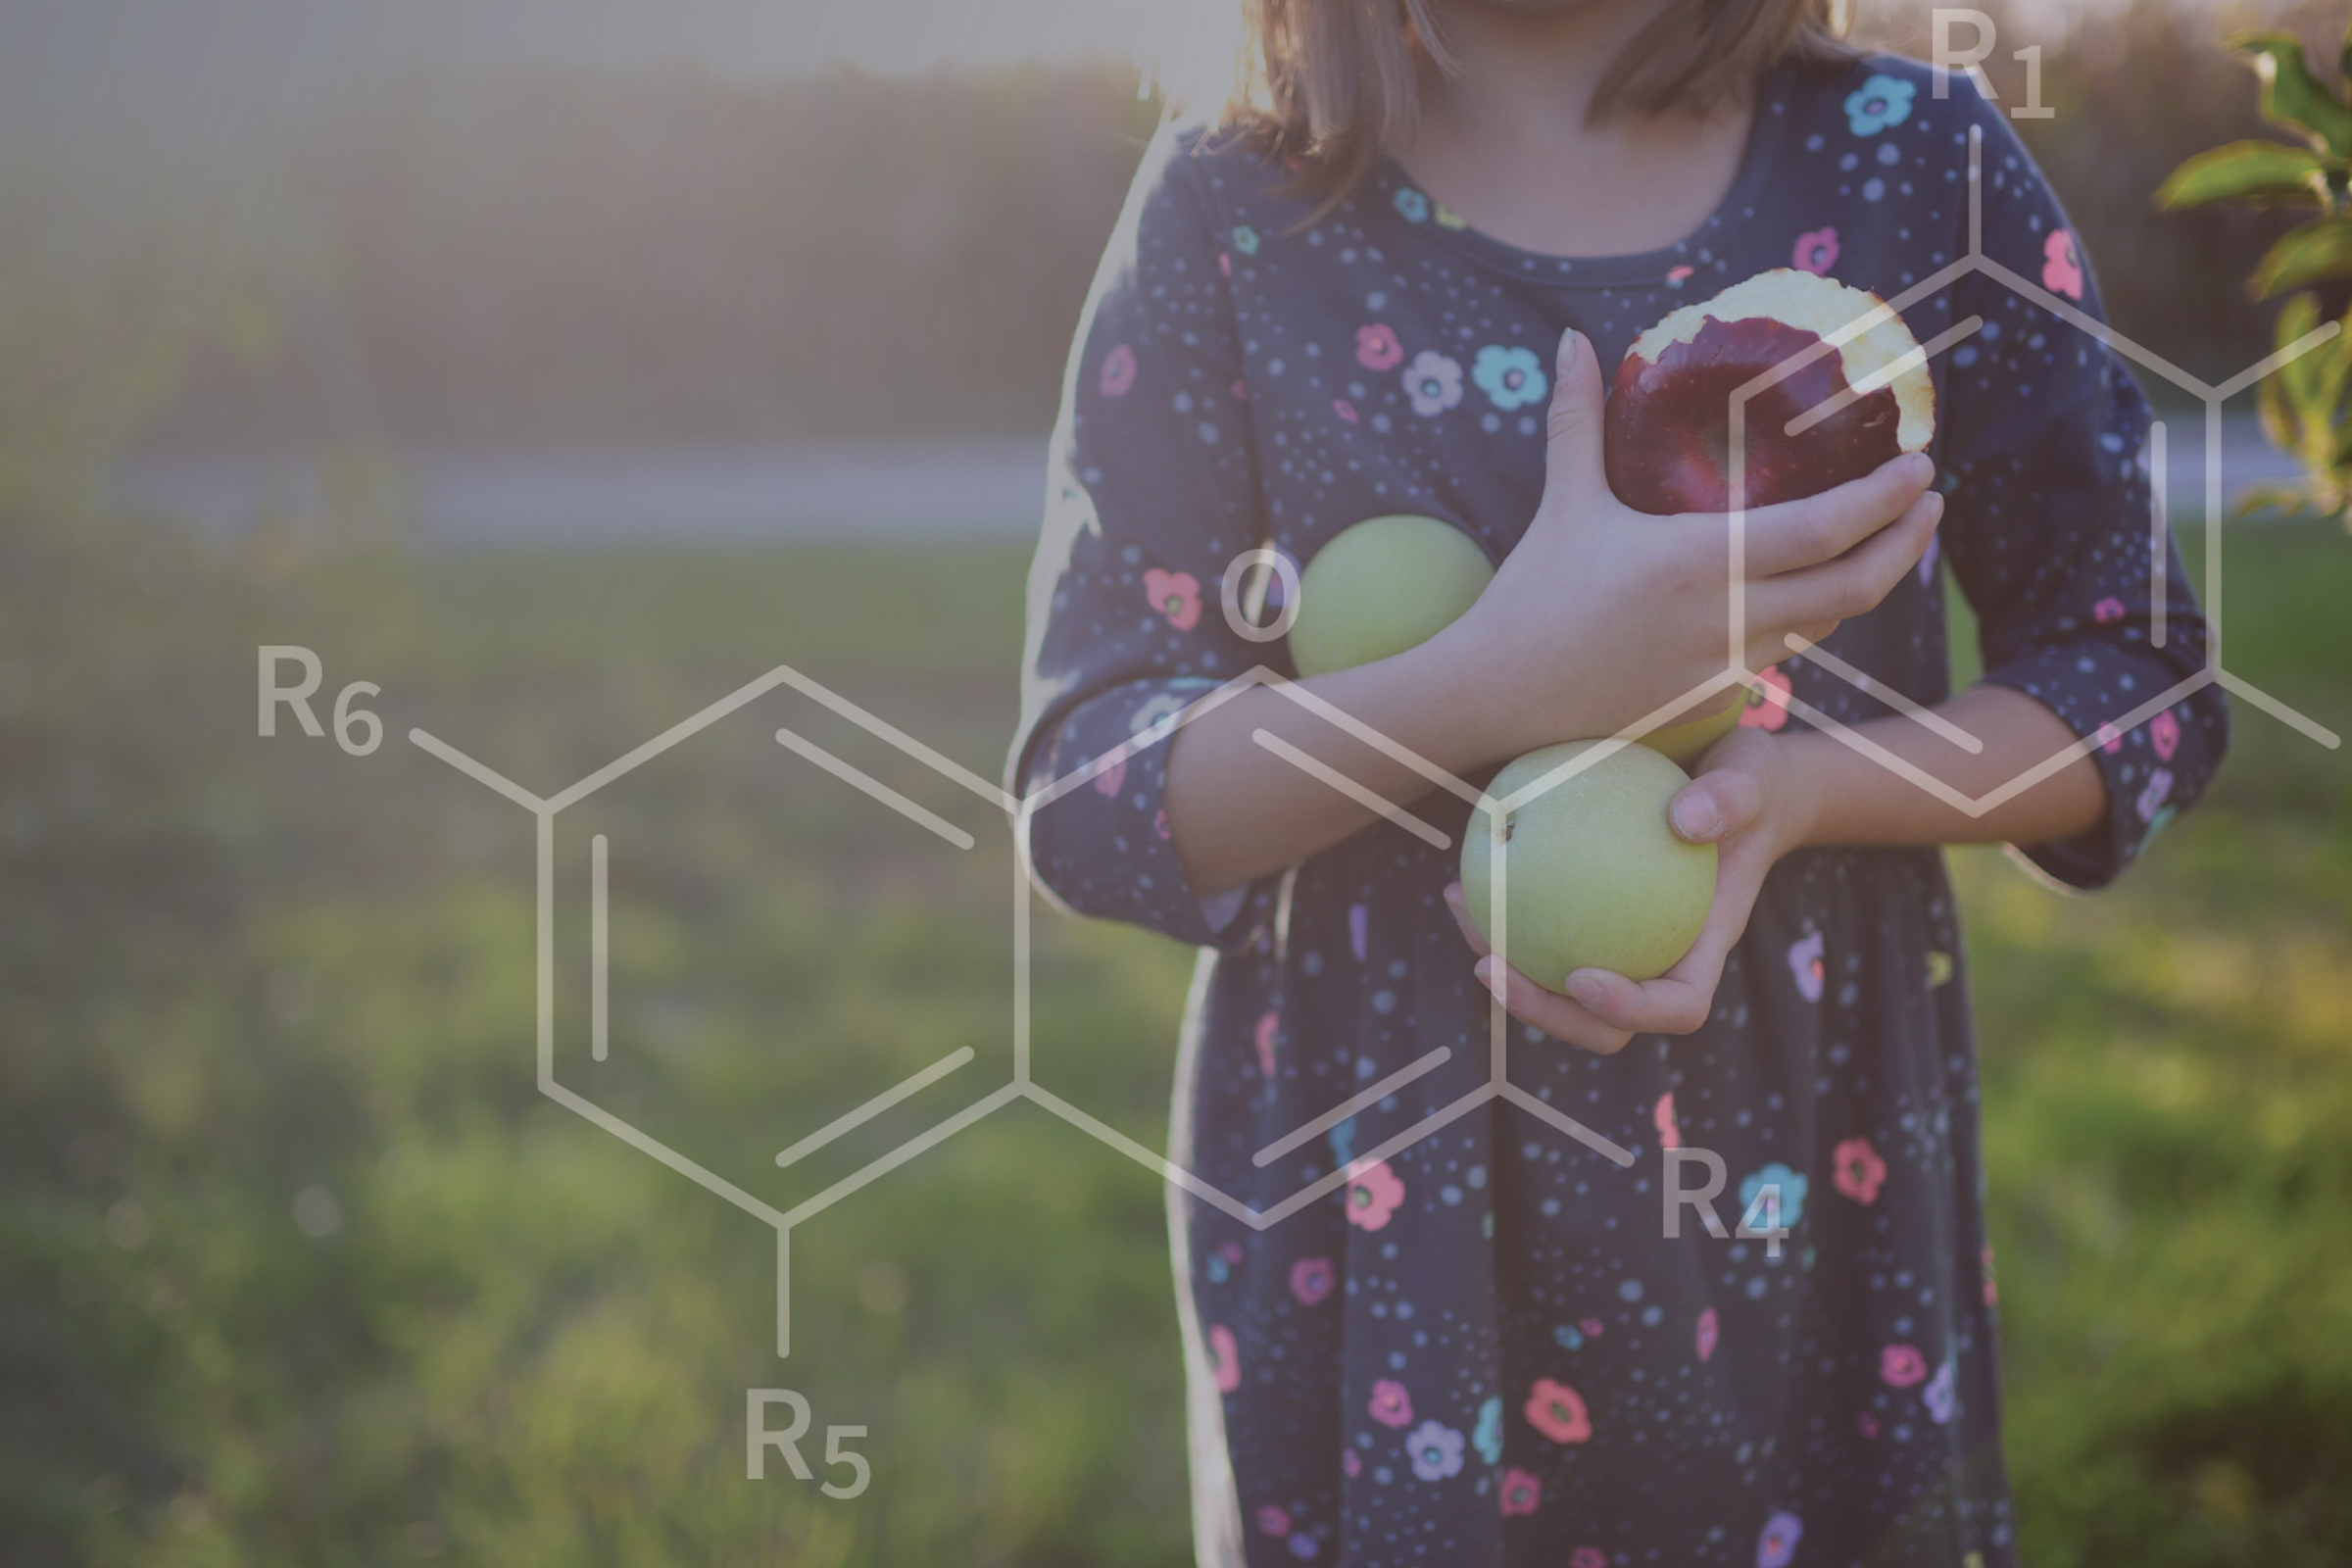 Girl holding apples in field with overlaid image of chemical compound